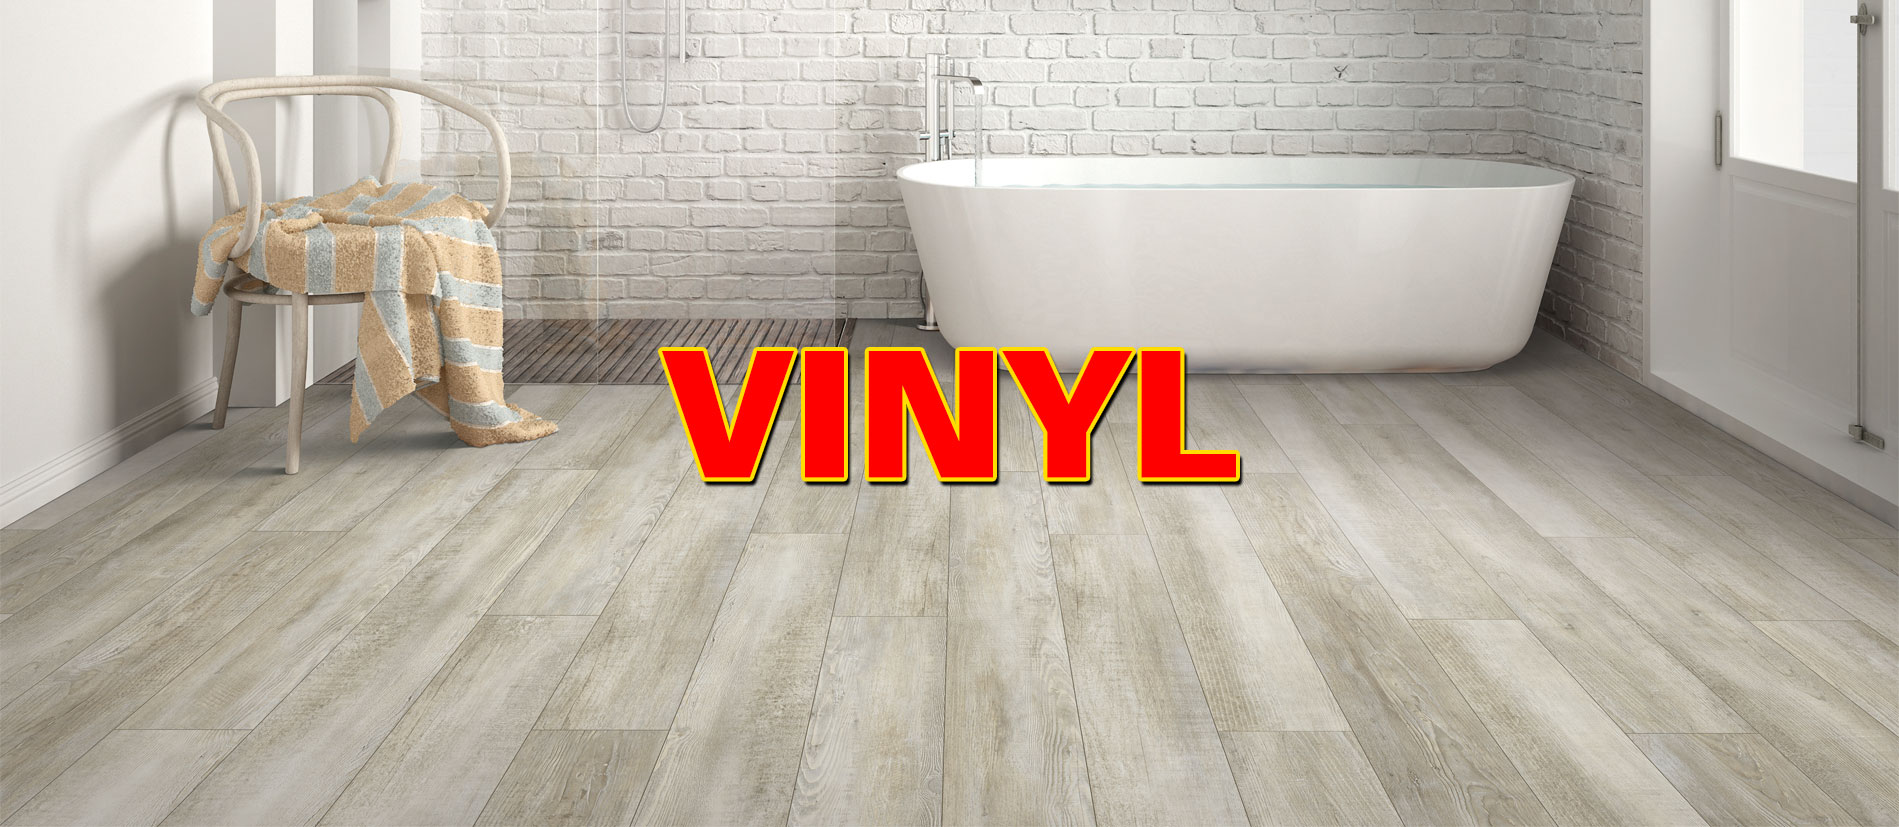 Thanks To A Number Of Advancements Over The Years Today S Vinyl Flooring Is Attractive Resilient Provides Good Durability For Cost And Nearly